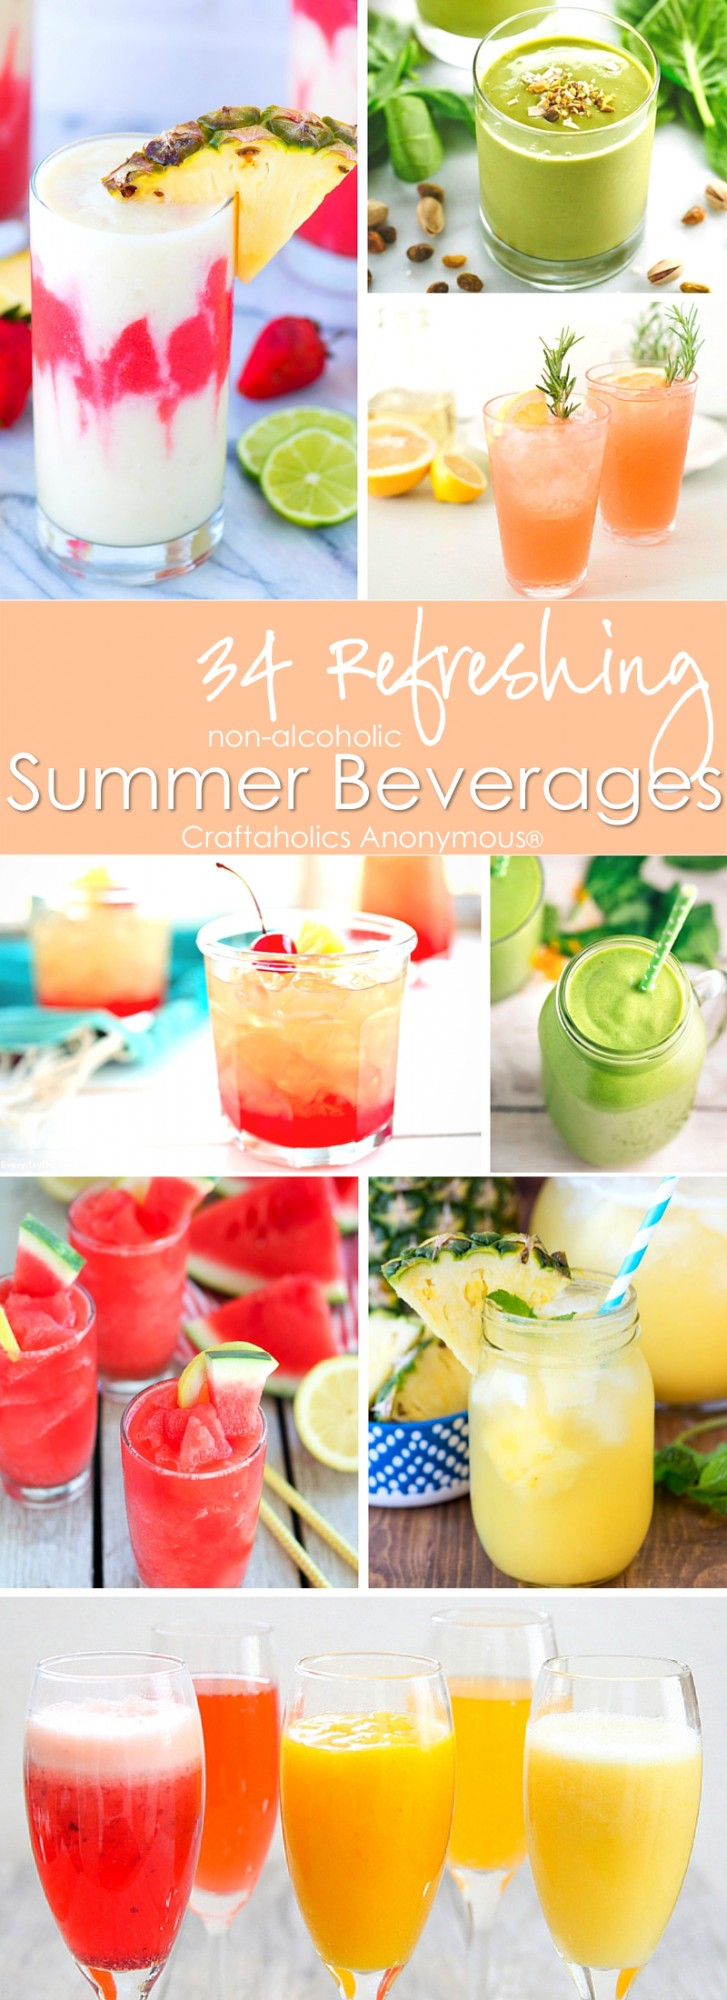 34 Refreshing Summer Beverages